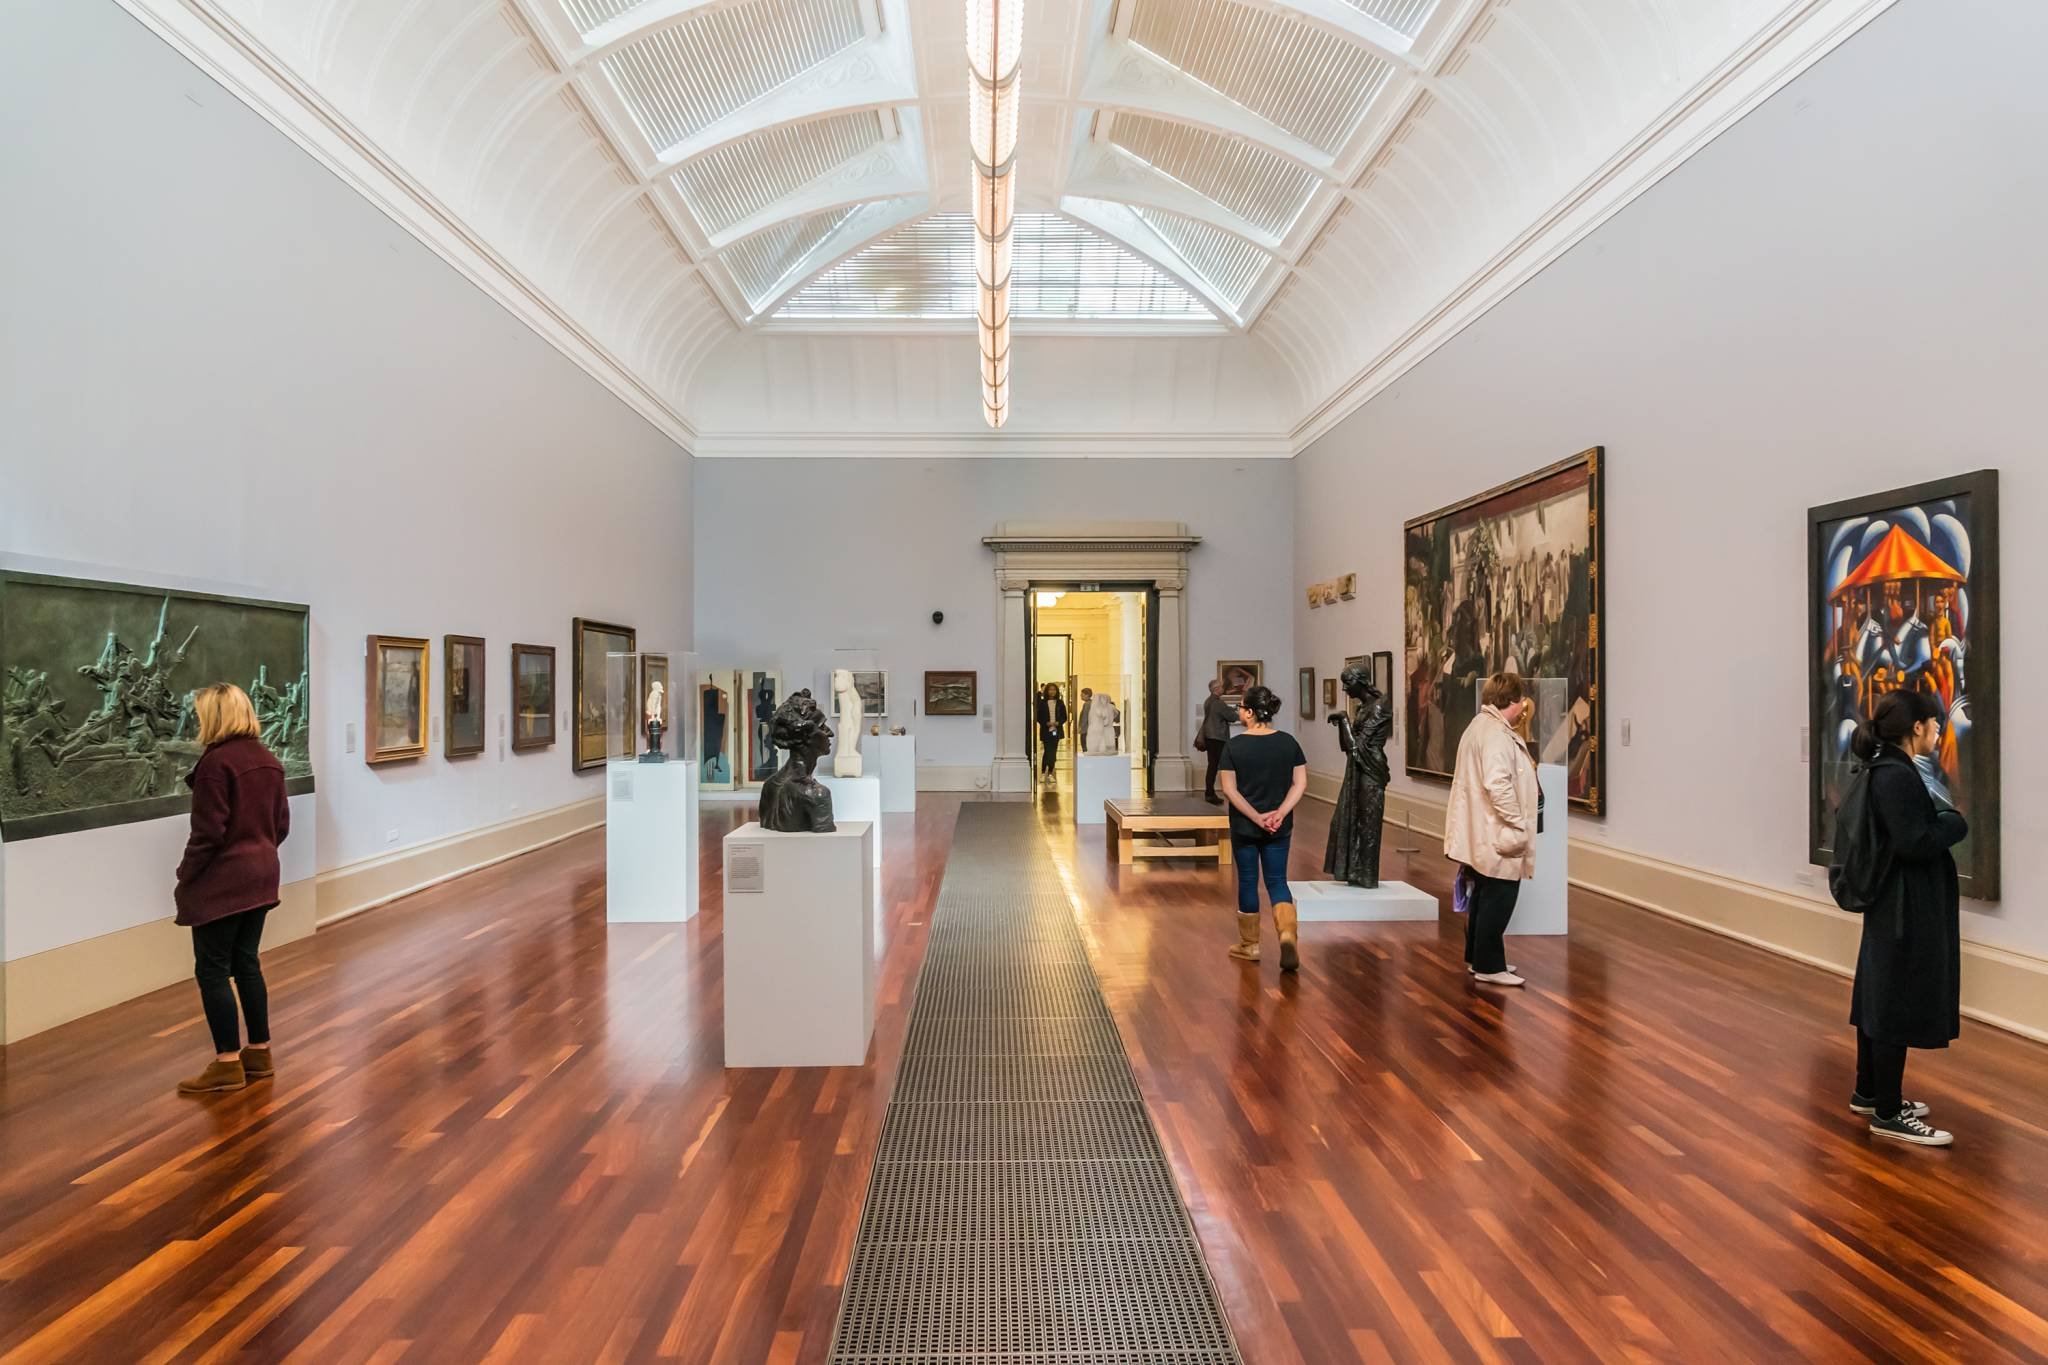 Visit Tate Museum with Tours & Travel Guide